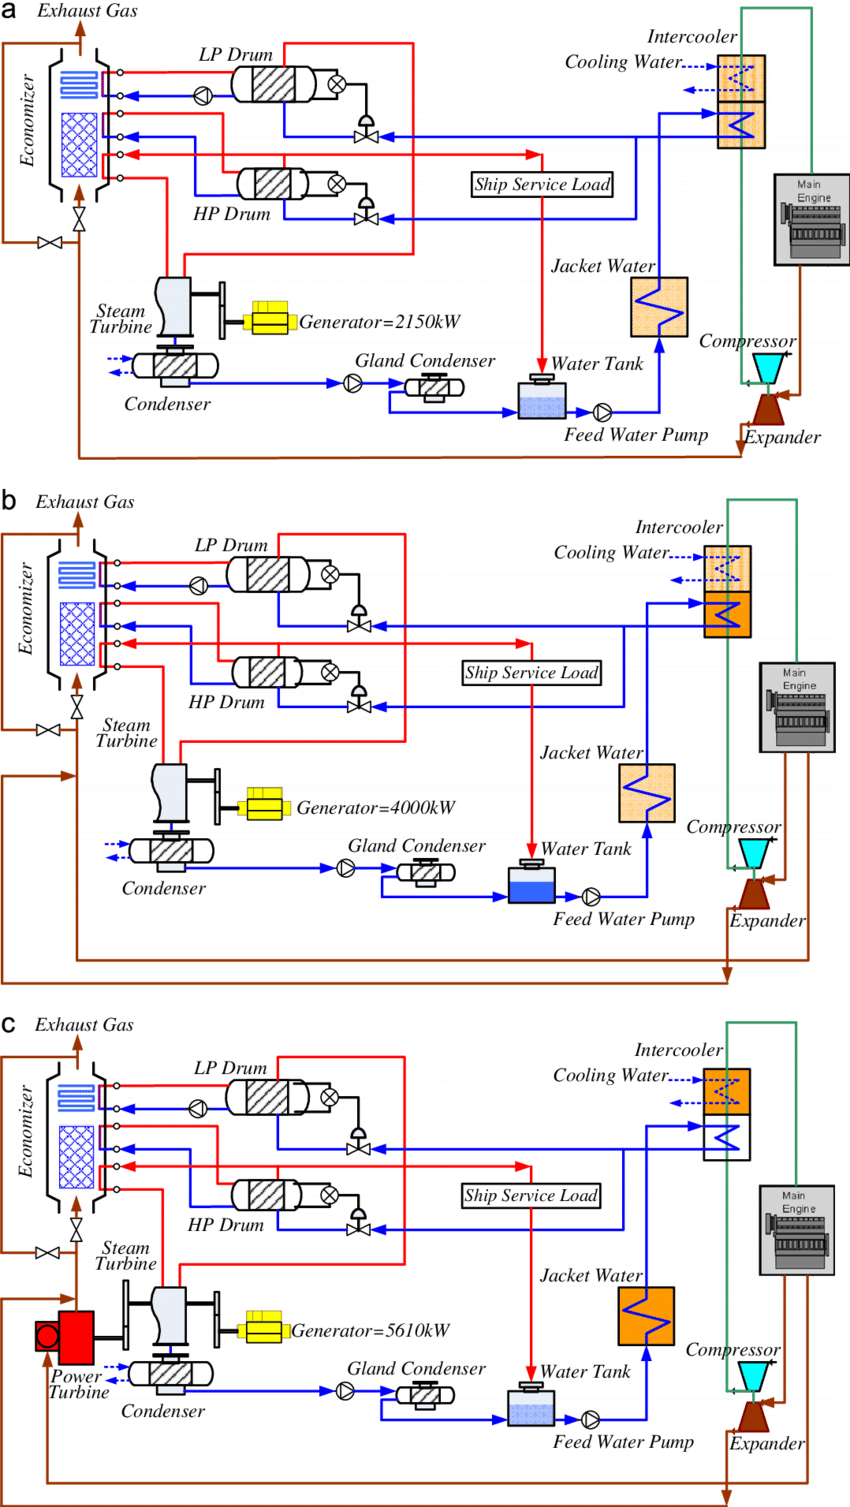 hight resolution of  a dural pressure boiler b system diagram with exhaust gas bypass